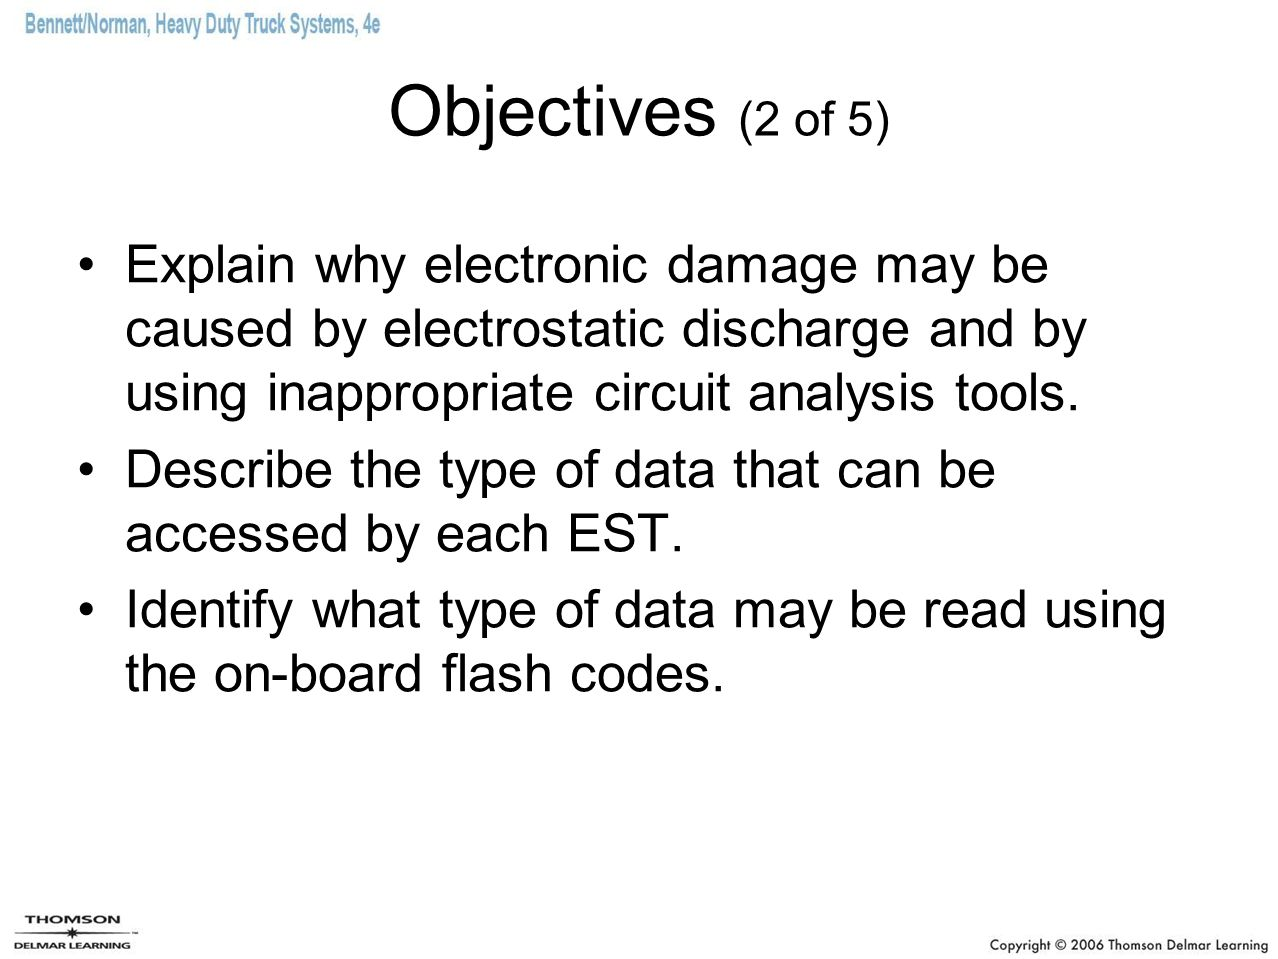 Objectives (2 of 5) Explain why electronic damage may be caused by electrostatic discharge and by using inappropriate circuit analysis tools.